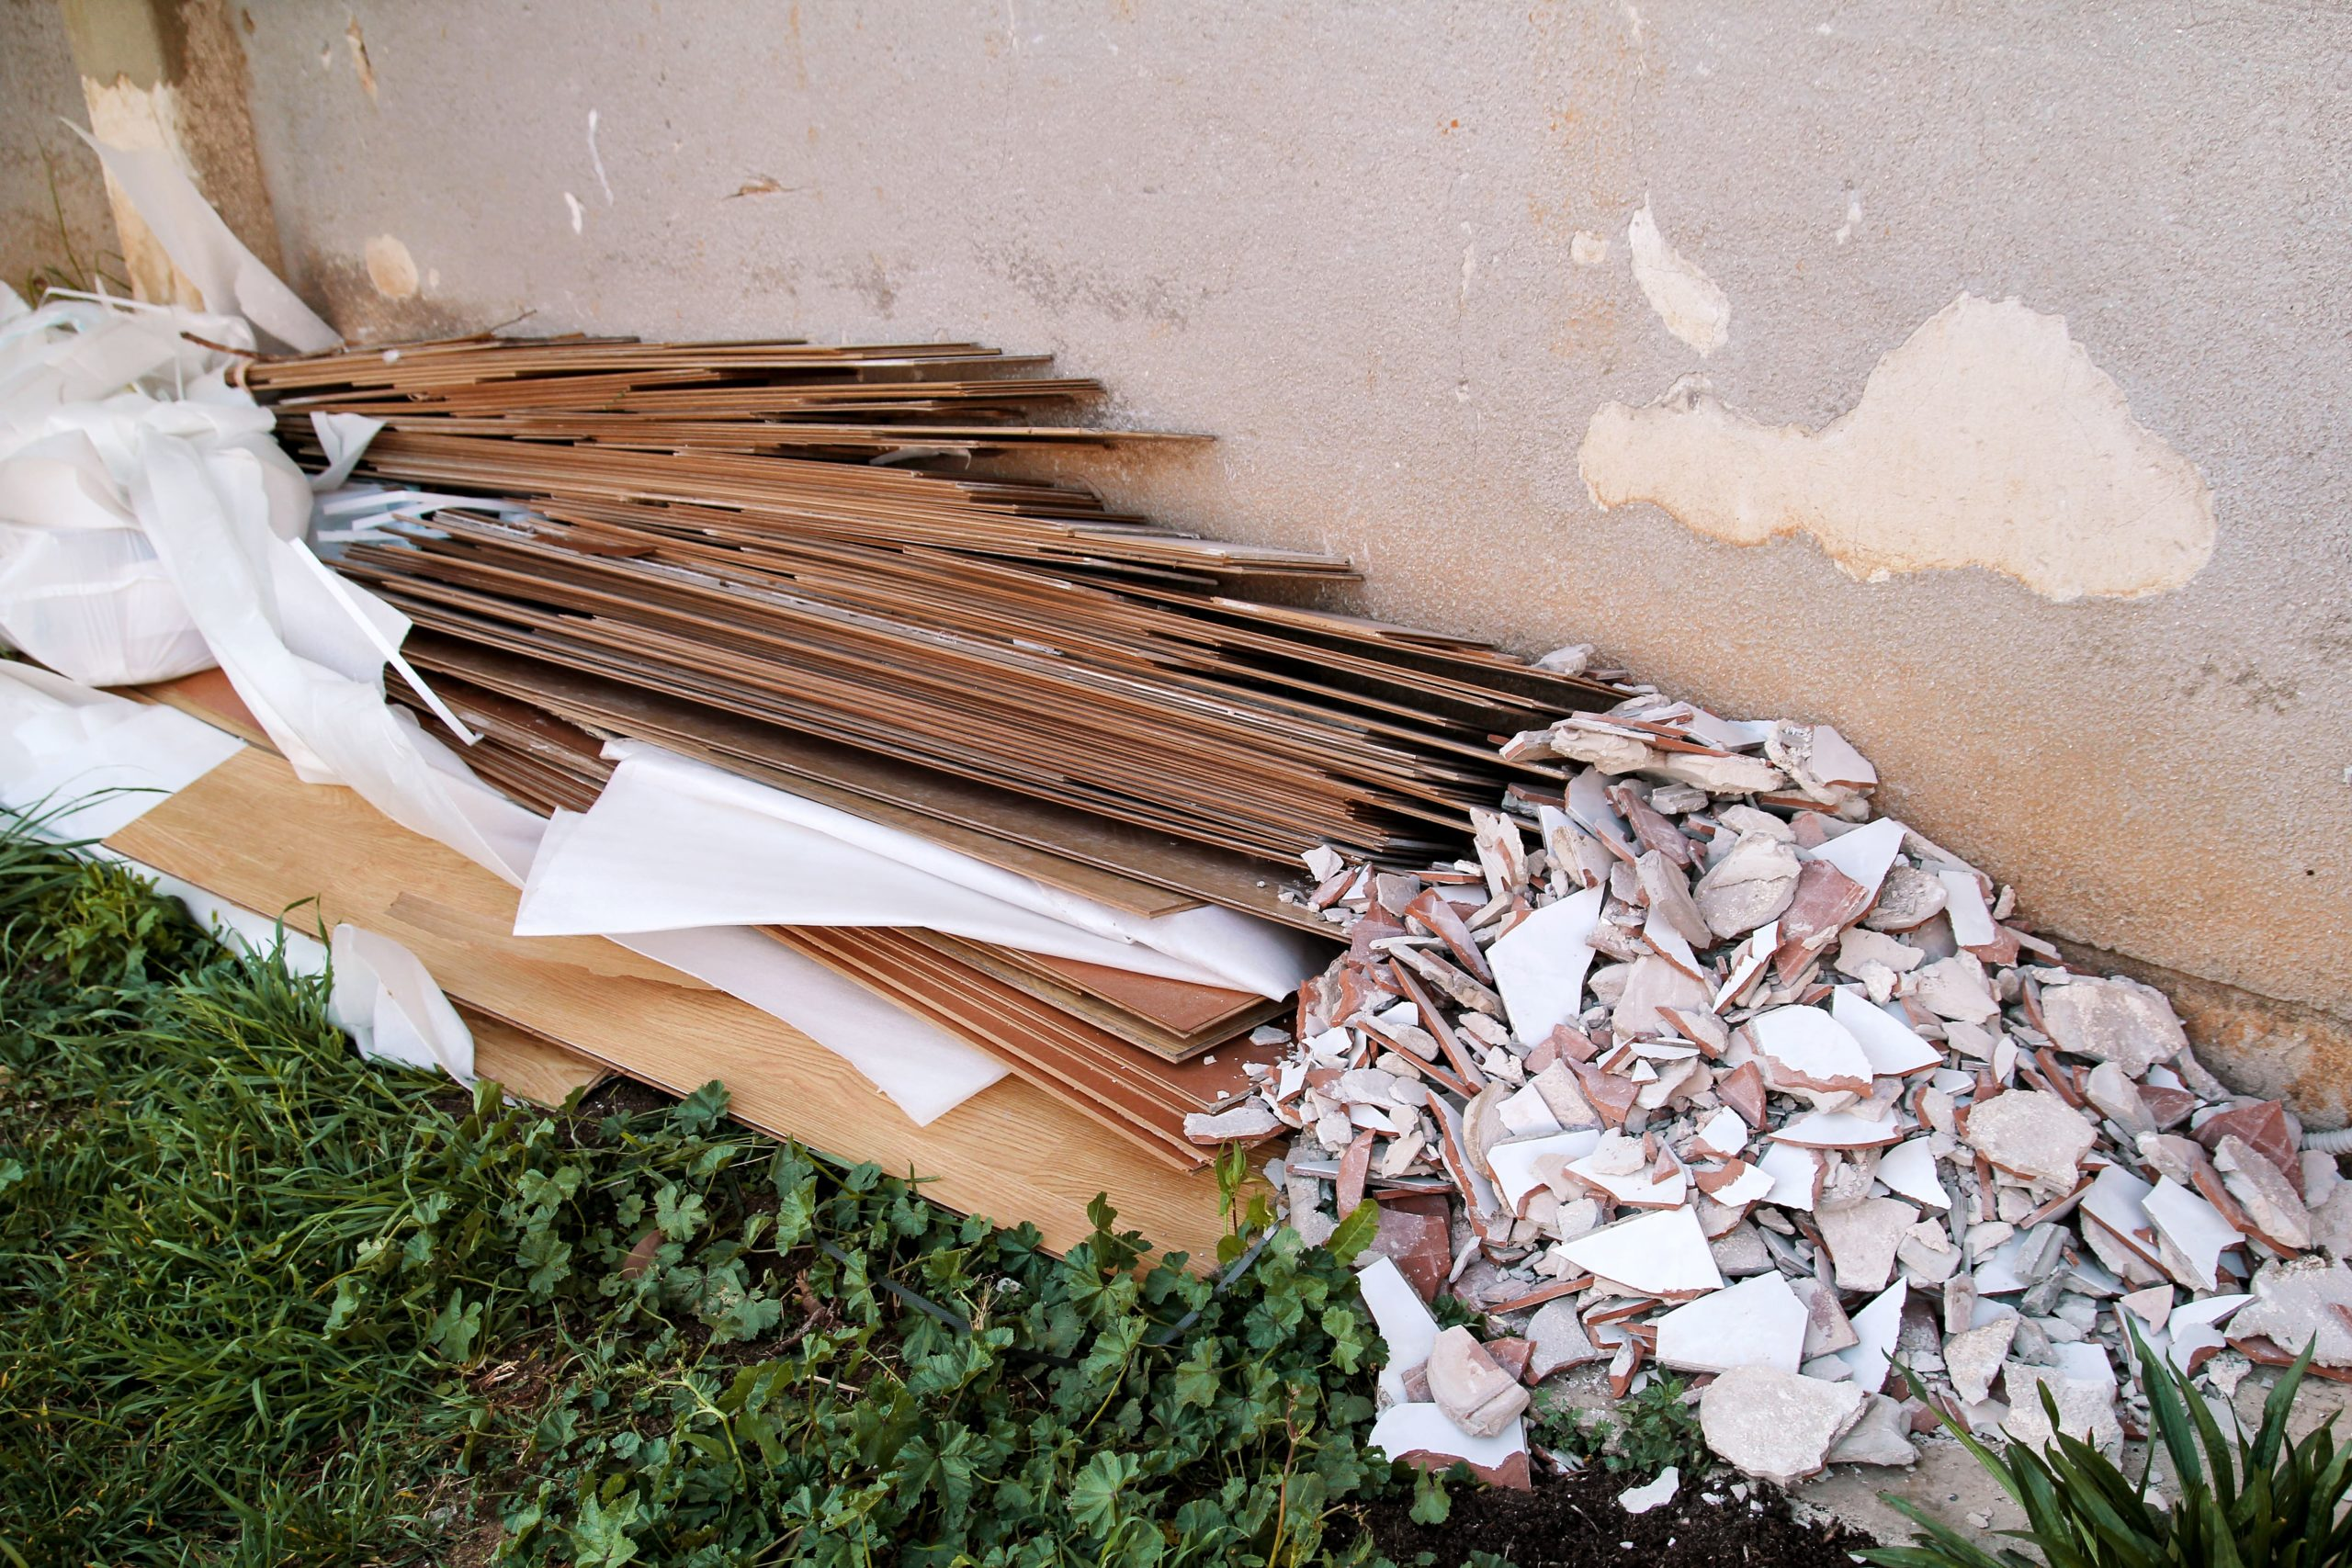 Construction Waste Disposal